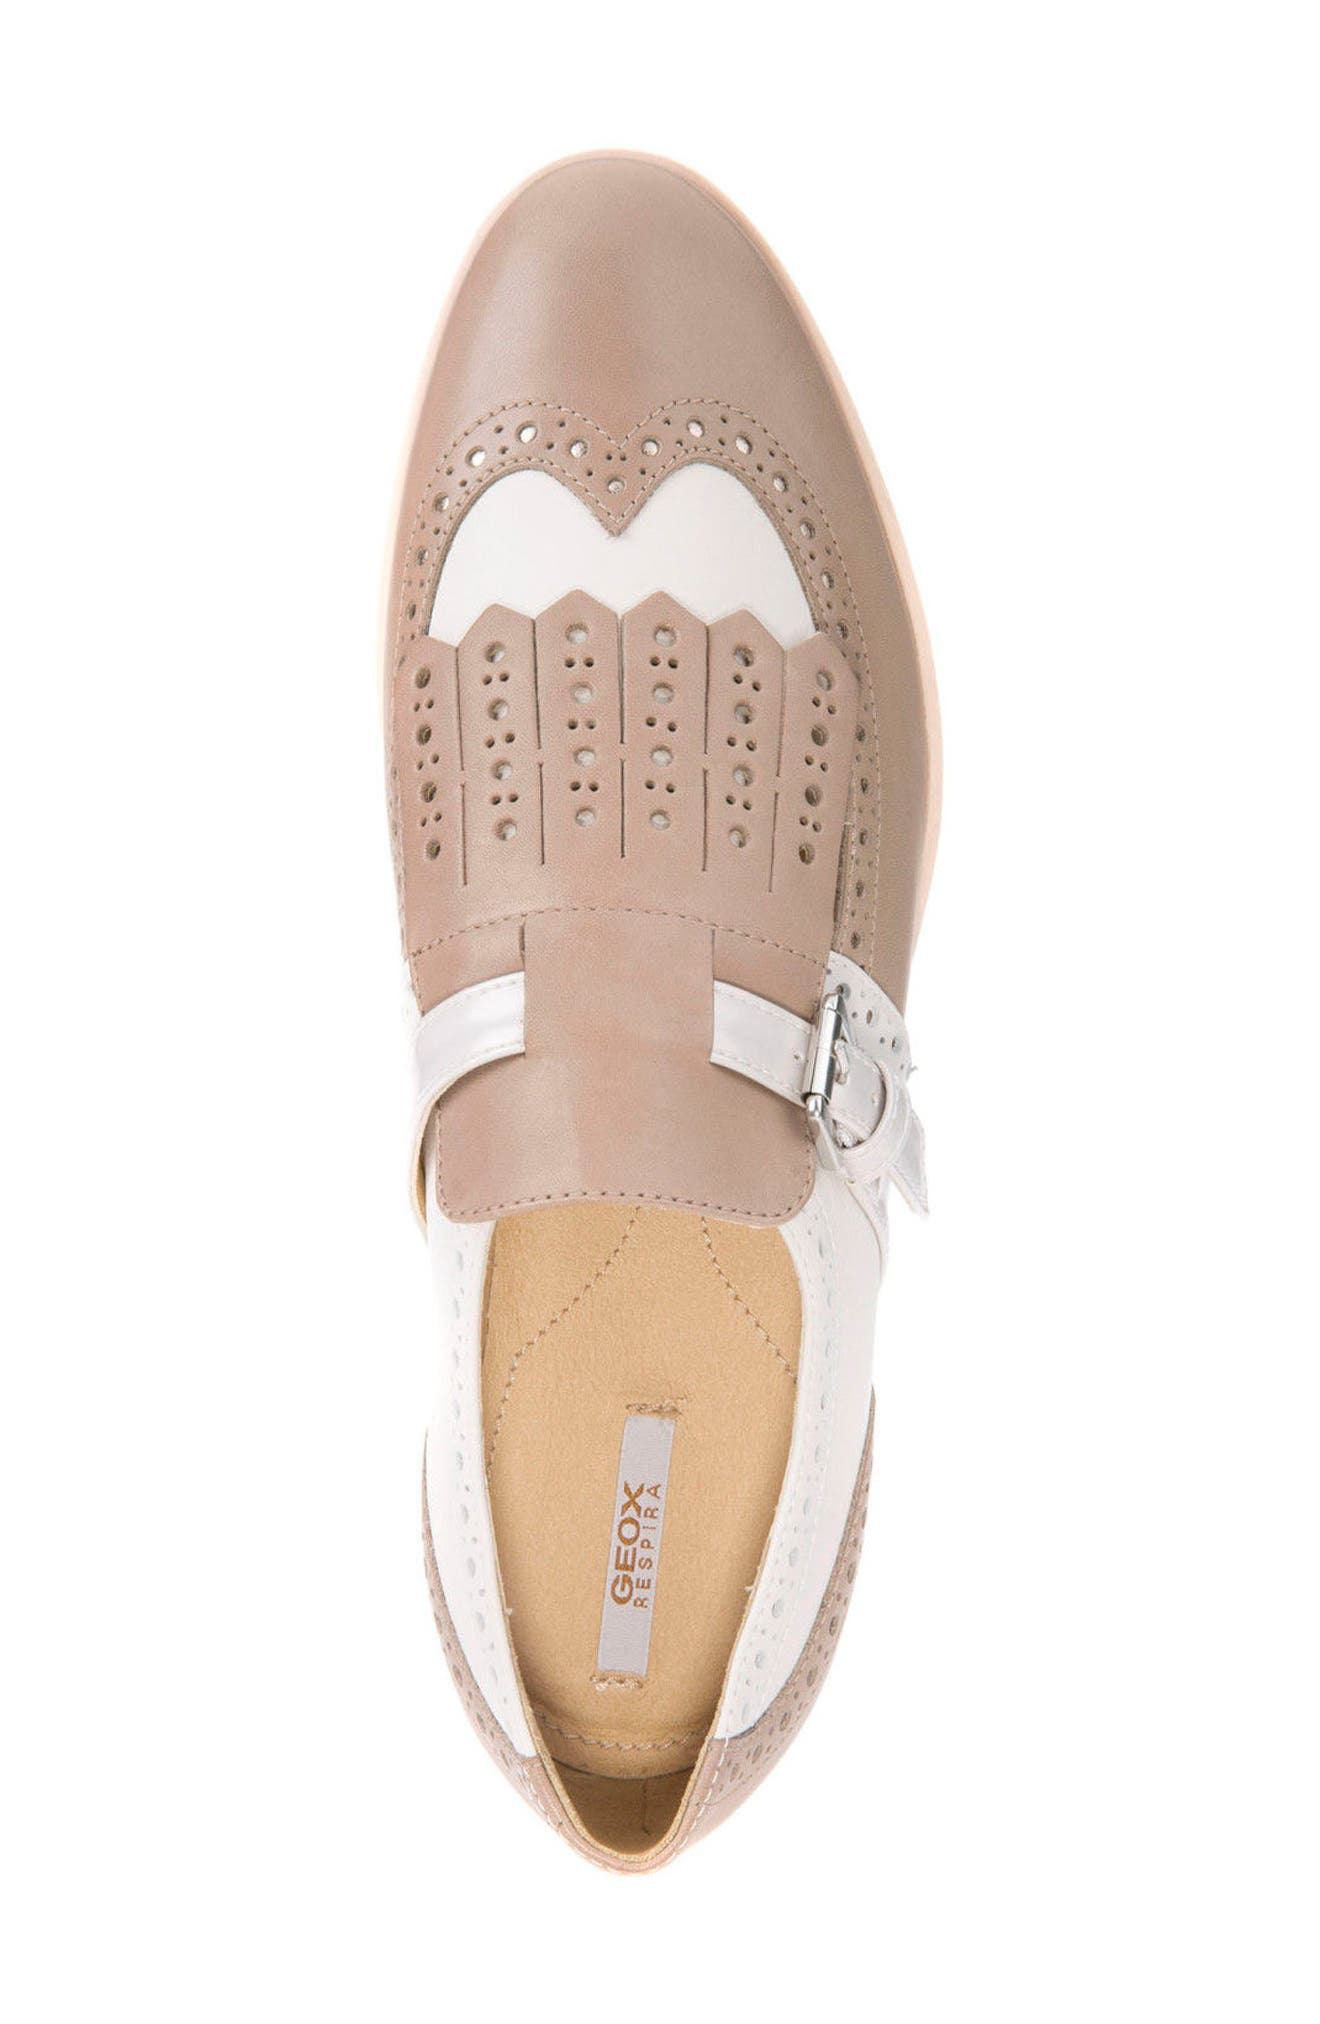 Janalee Cutout Loafer,                             Alternate thumbnail 5, color,                             Sand Leather